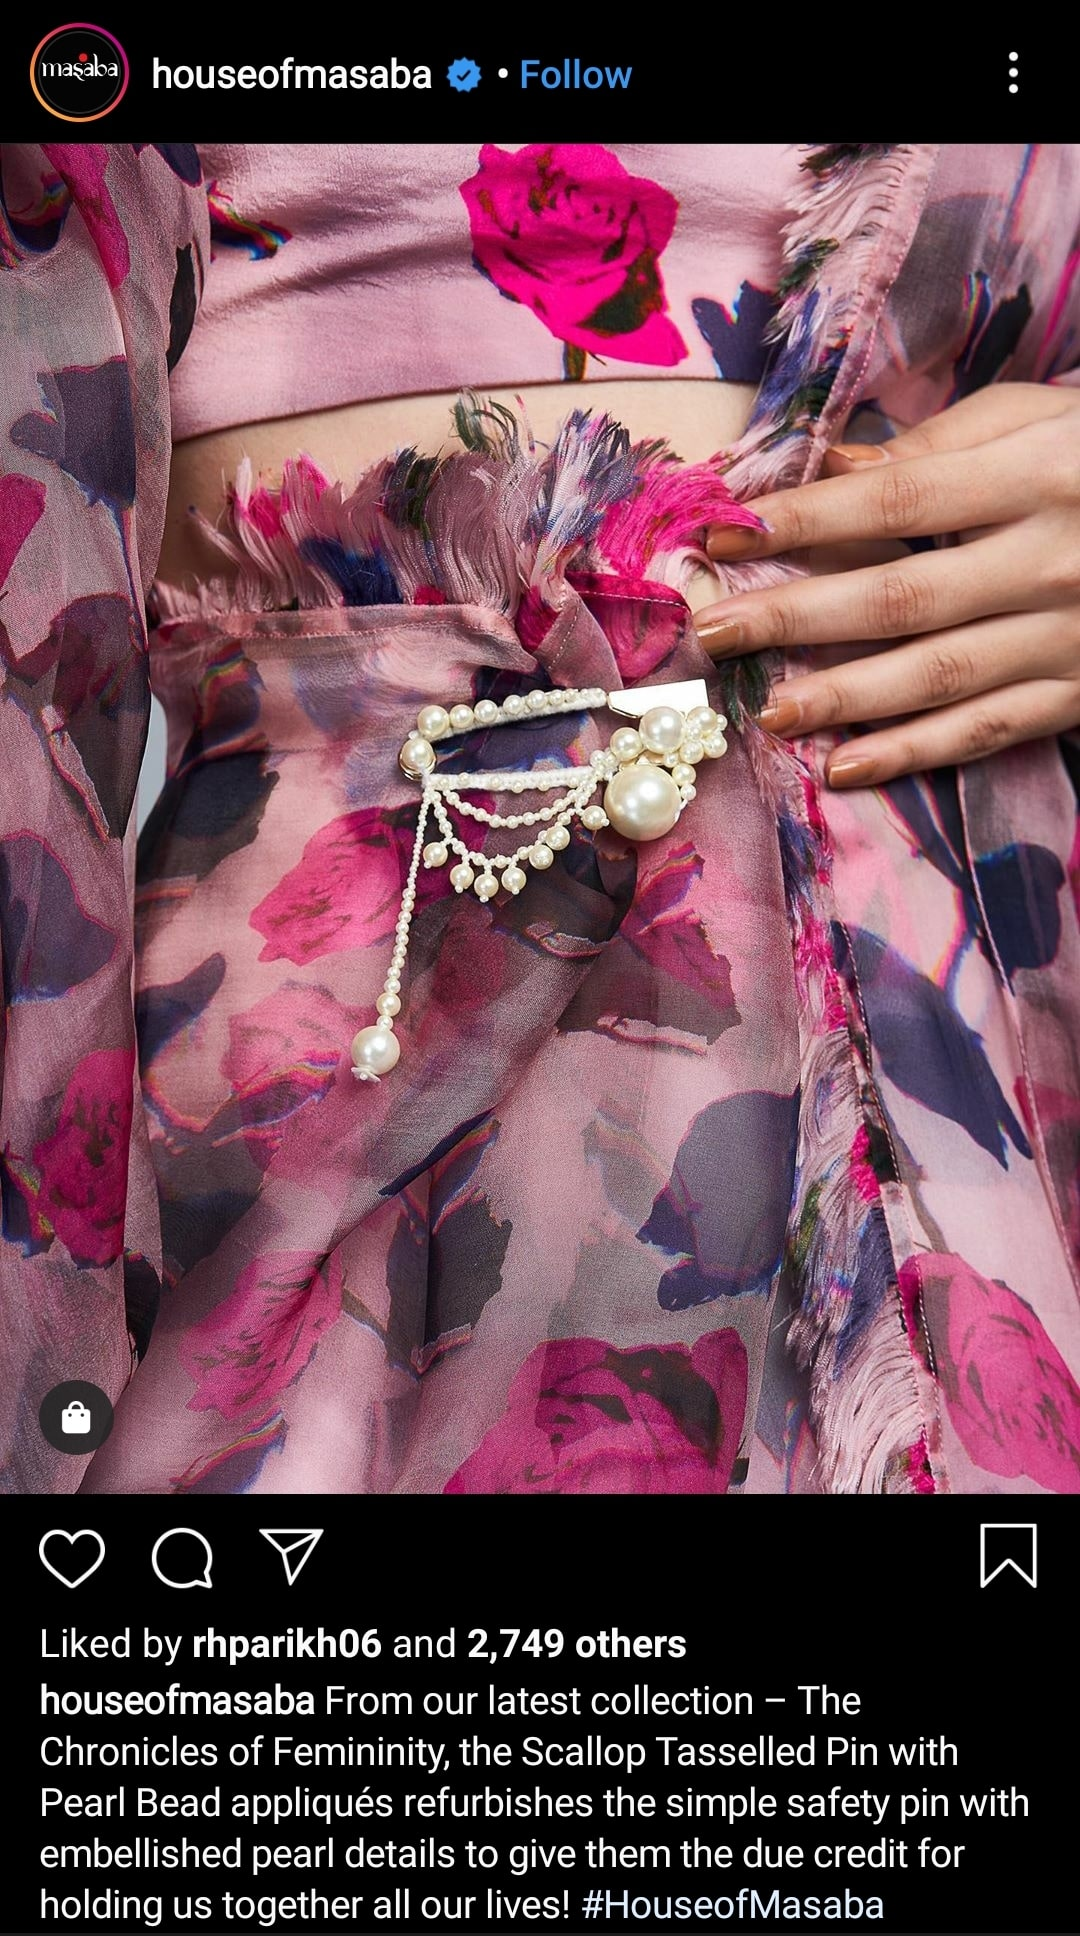 How to sell more on Instagram - Write killer Instagram caption by House of Masaba